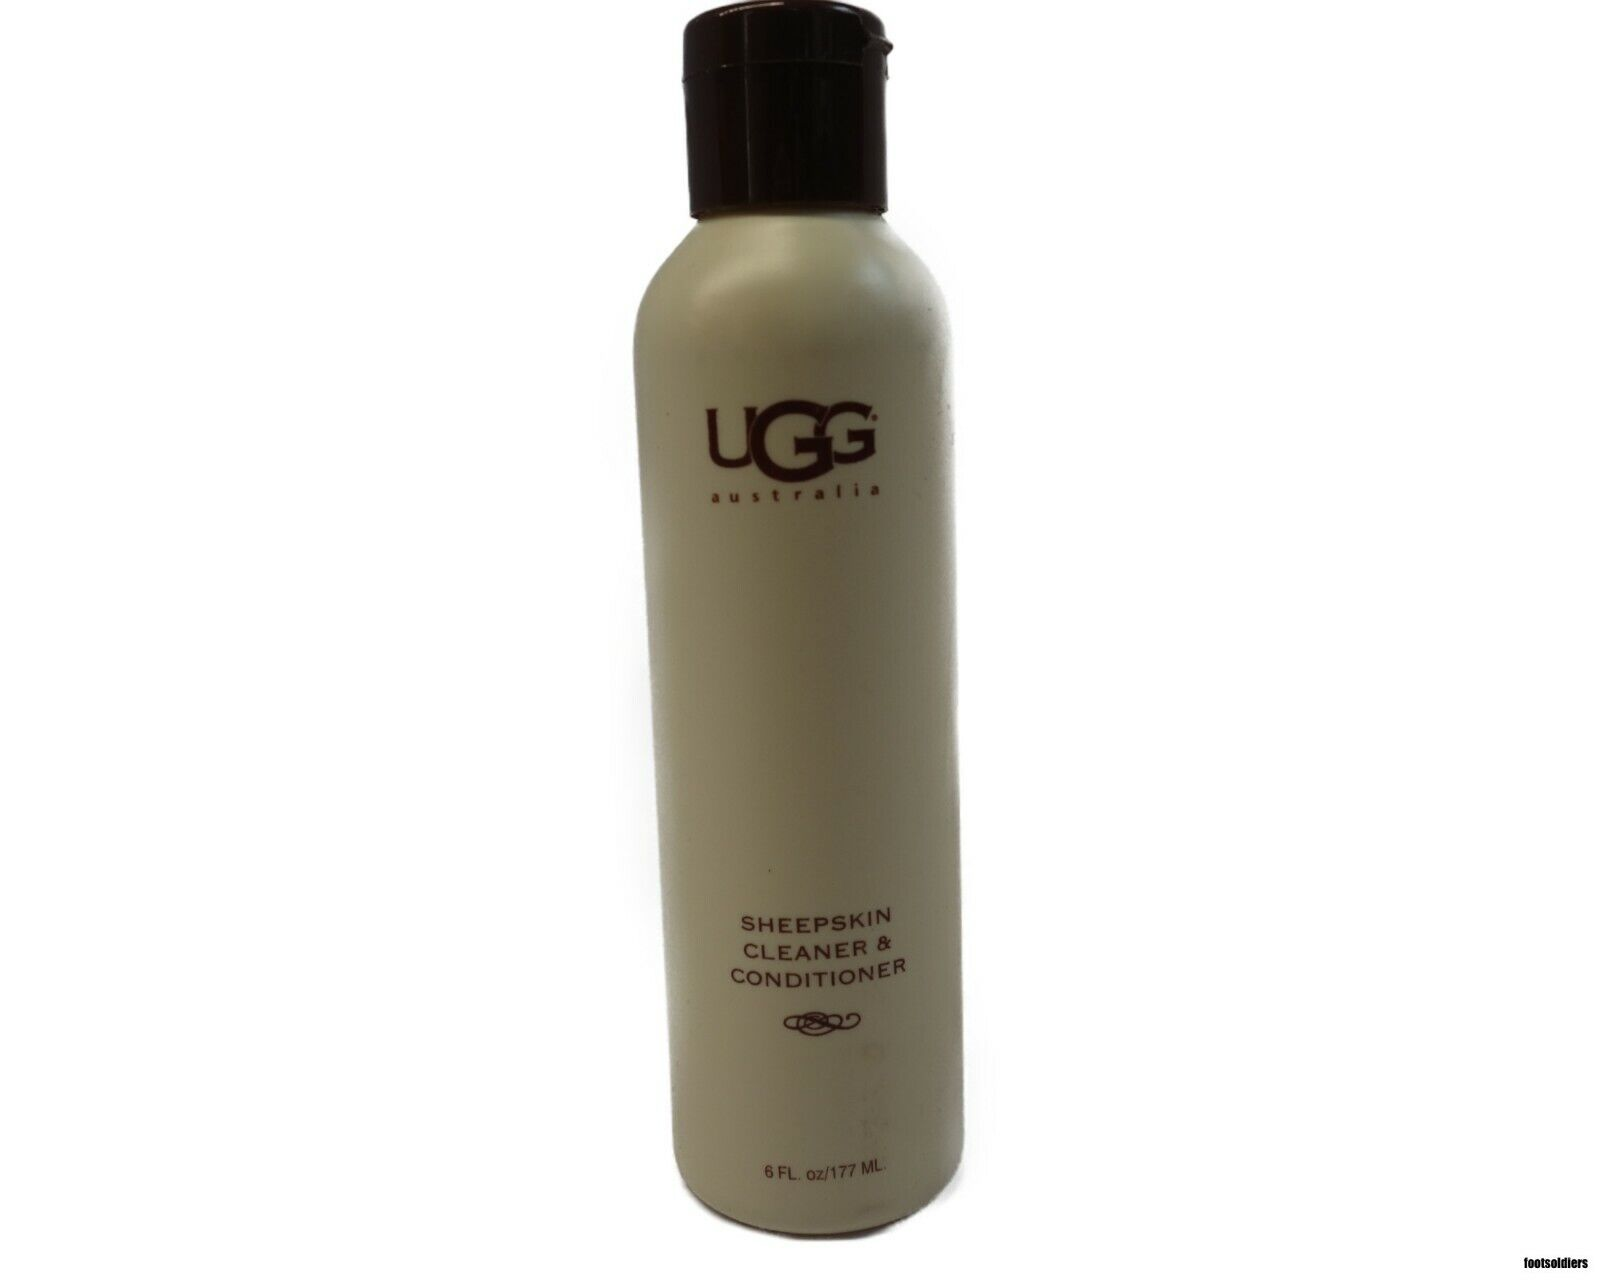 UGG Sheepskin Cleaner and Conditioner Liquid Small Bottle